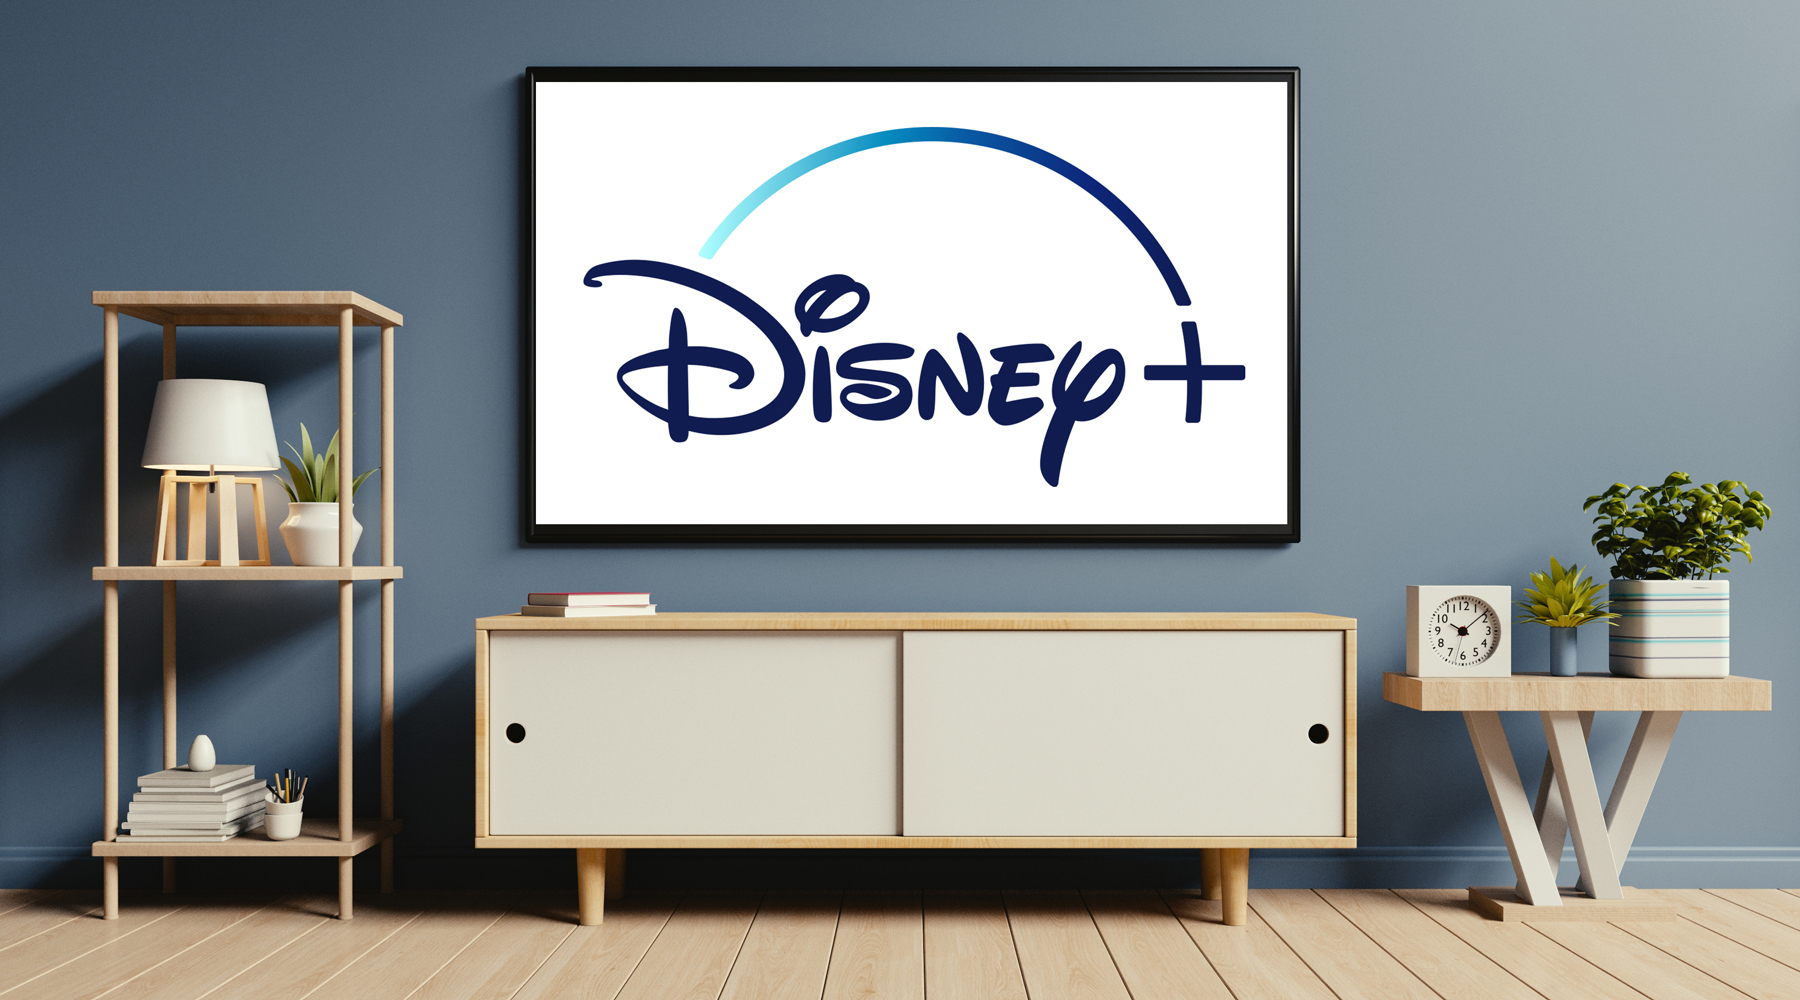 Disney Plus - list of the best shows, movies, and more content